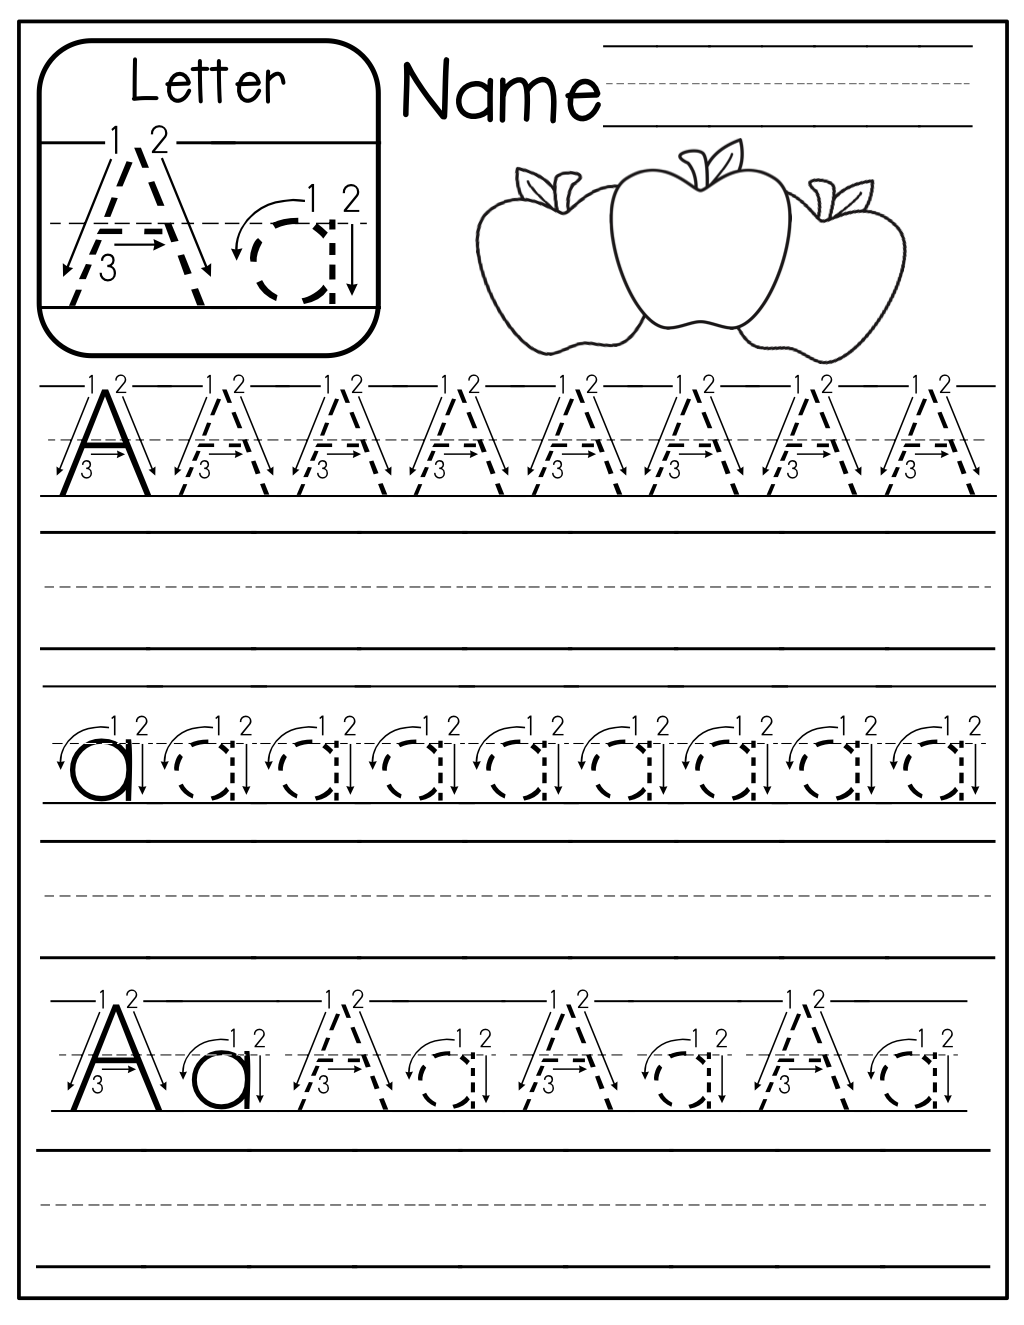 free free a z handwriting pages just print them out place them